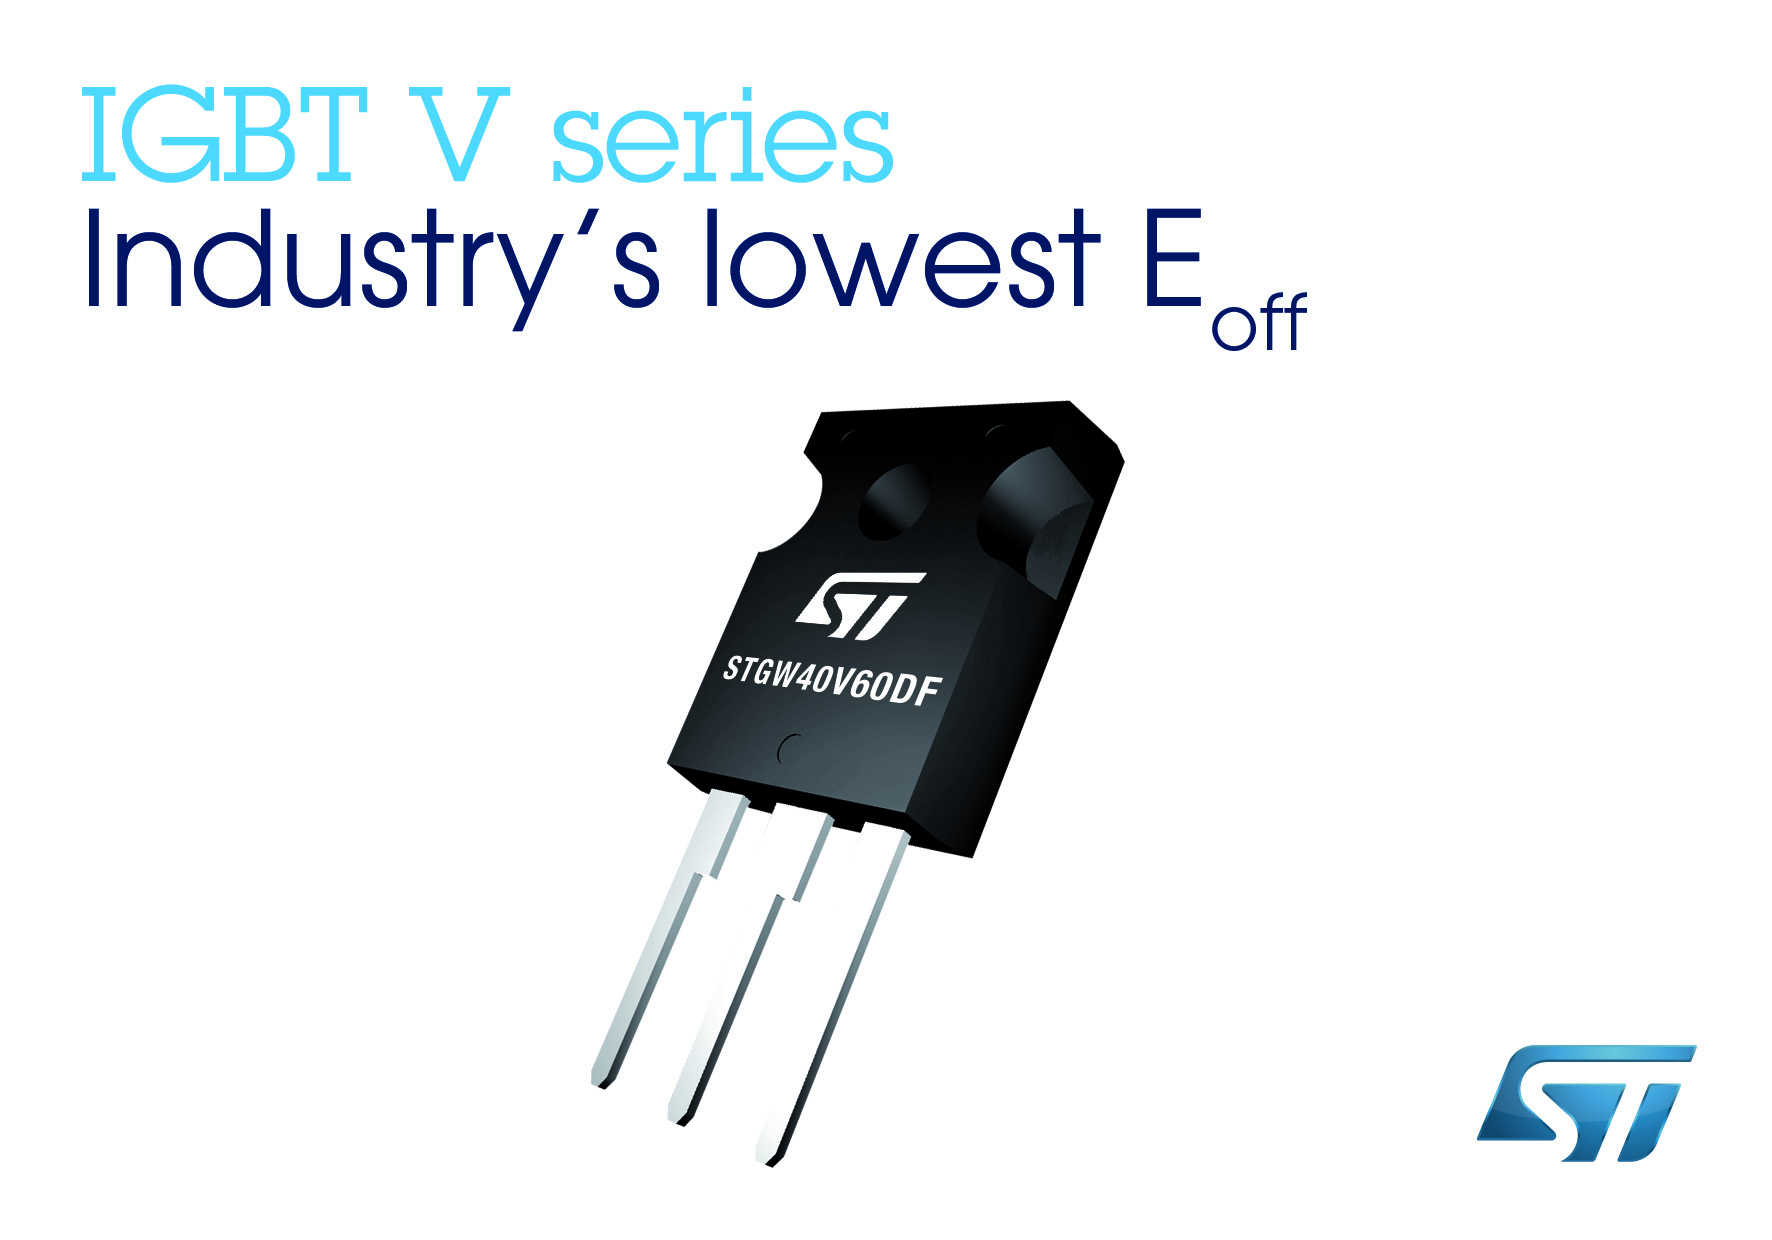 """Tail-less"" 600V IGBTs from STMicroelectronics Break Through Power-Design"